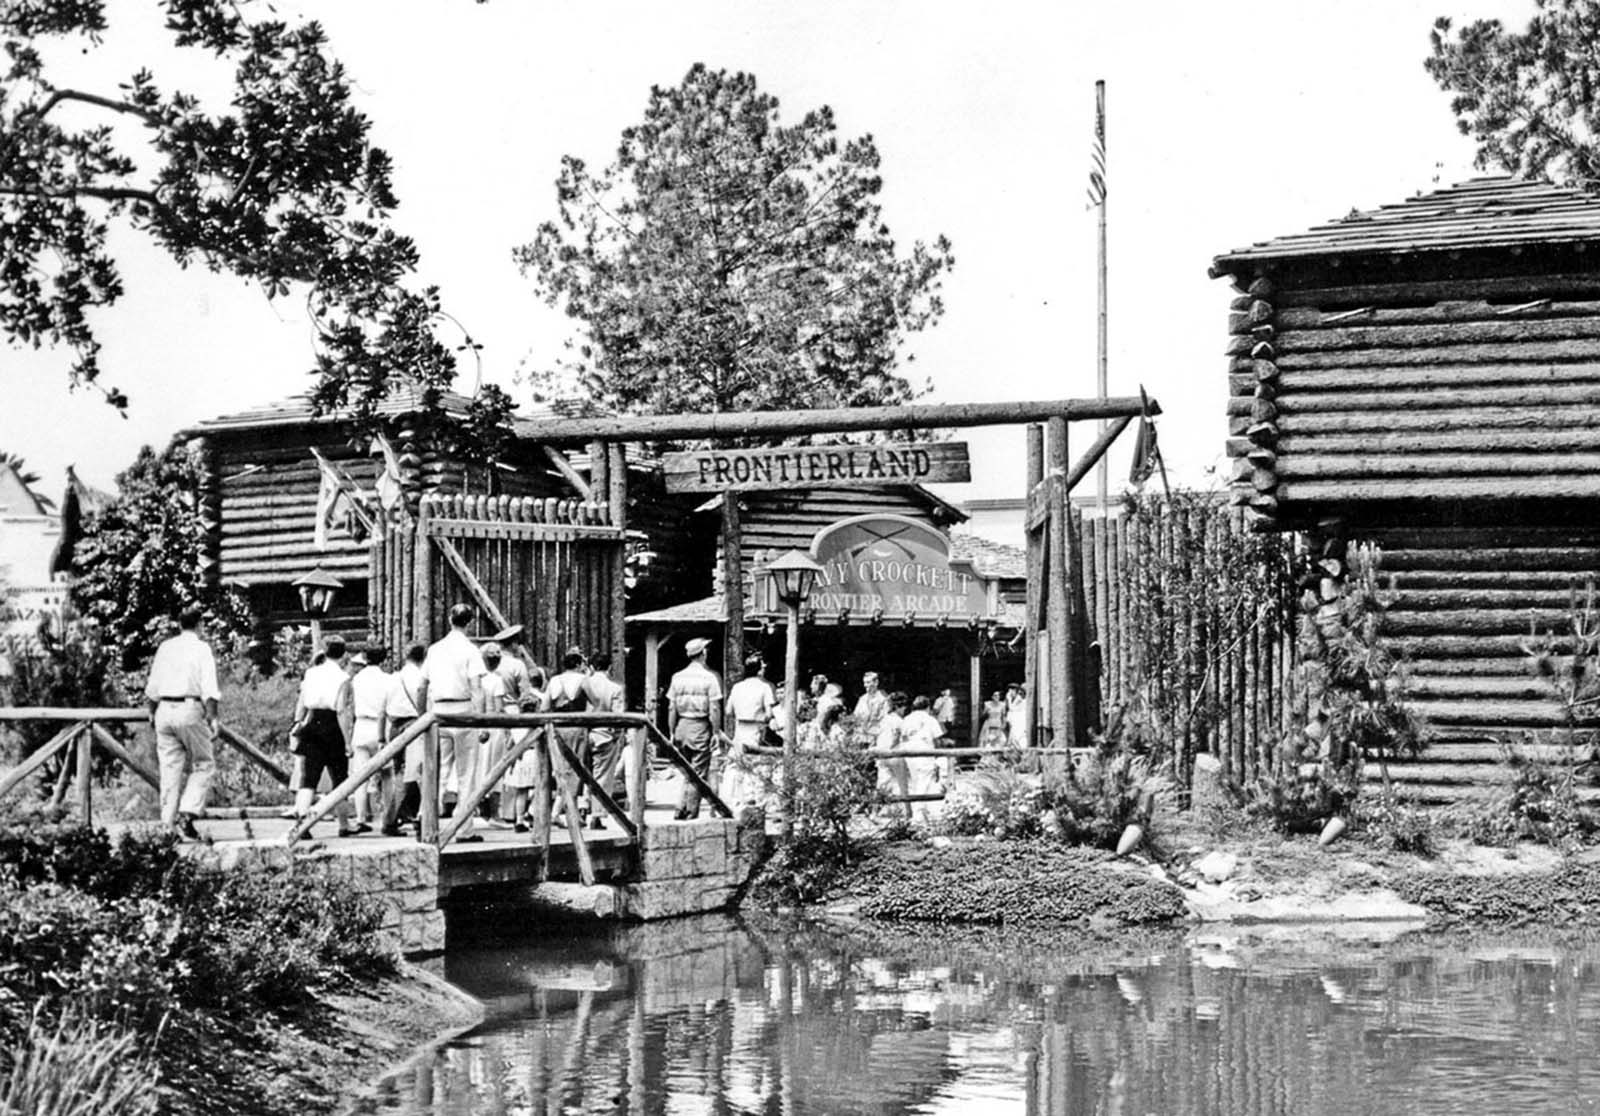 Tourists enter Frontierland, a re-creation of the Old West, in Disneyland, ca. 1955.